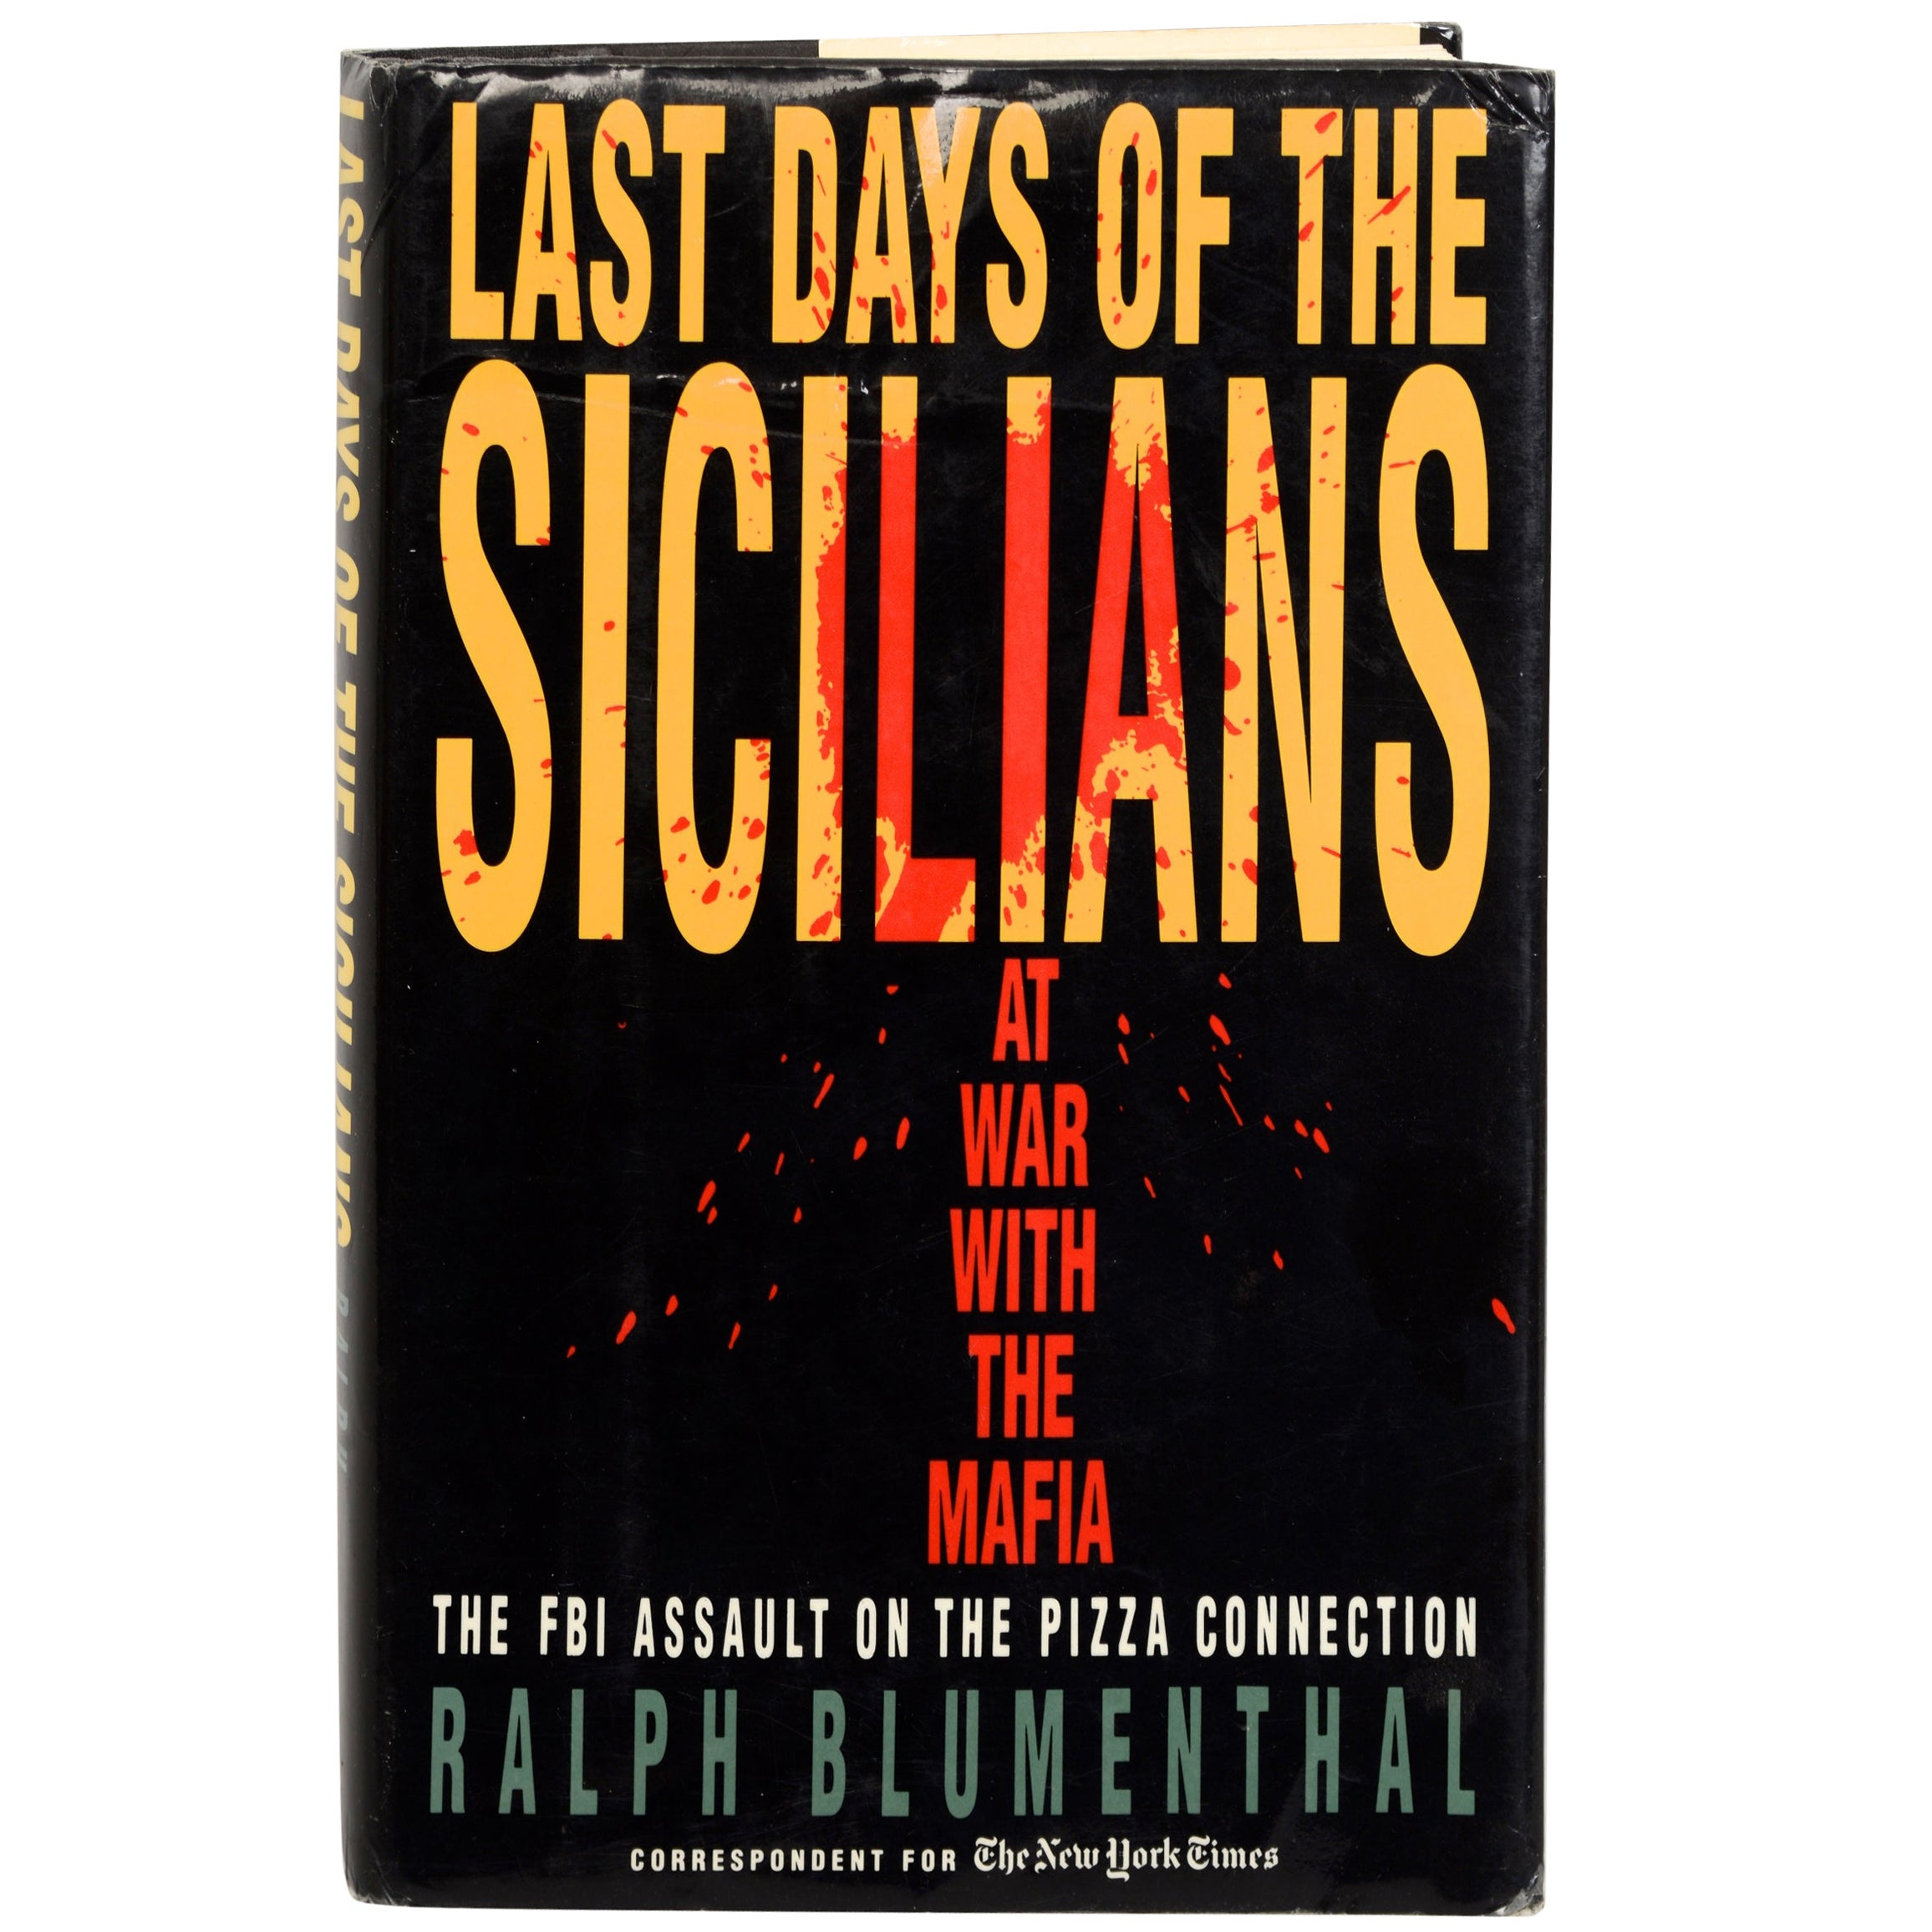 Last Days of the Sicilians by Ralph Blumenthal, Stated First Edition